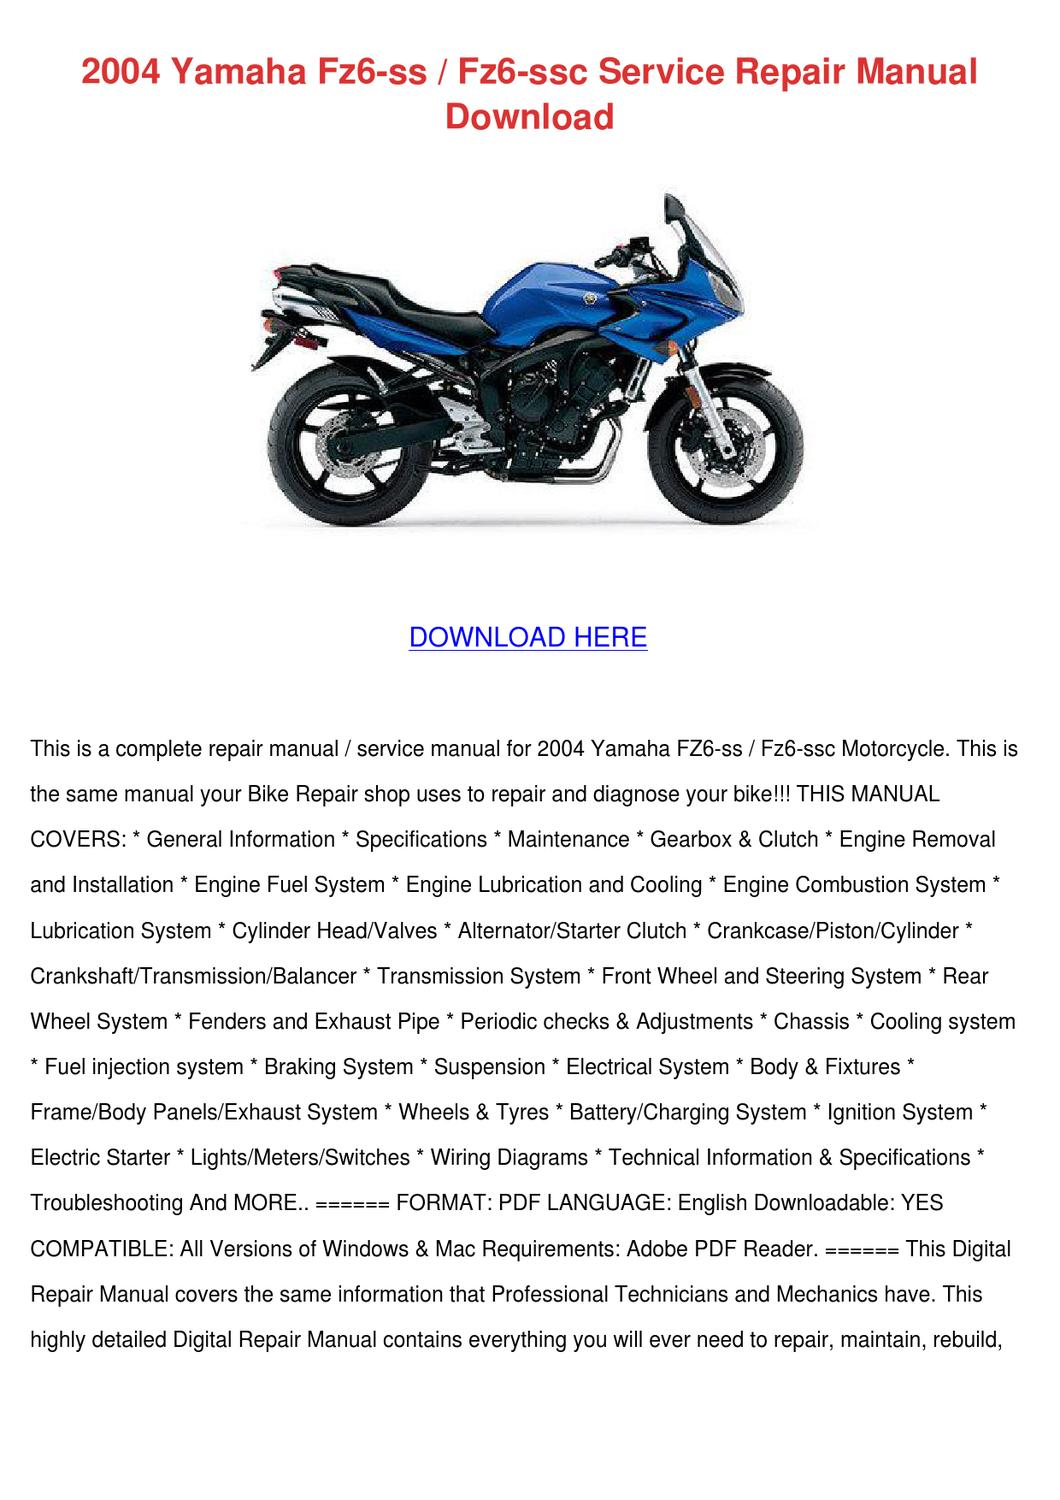 2002 Yamaha R1 Ignition Wiring Diagram